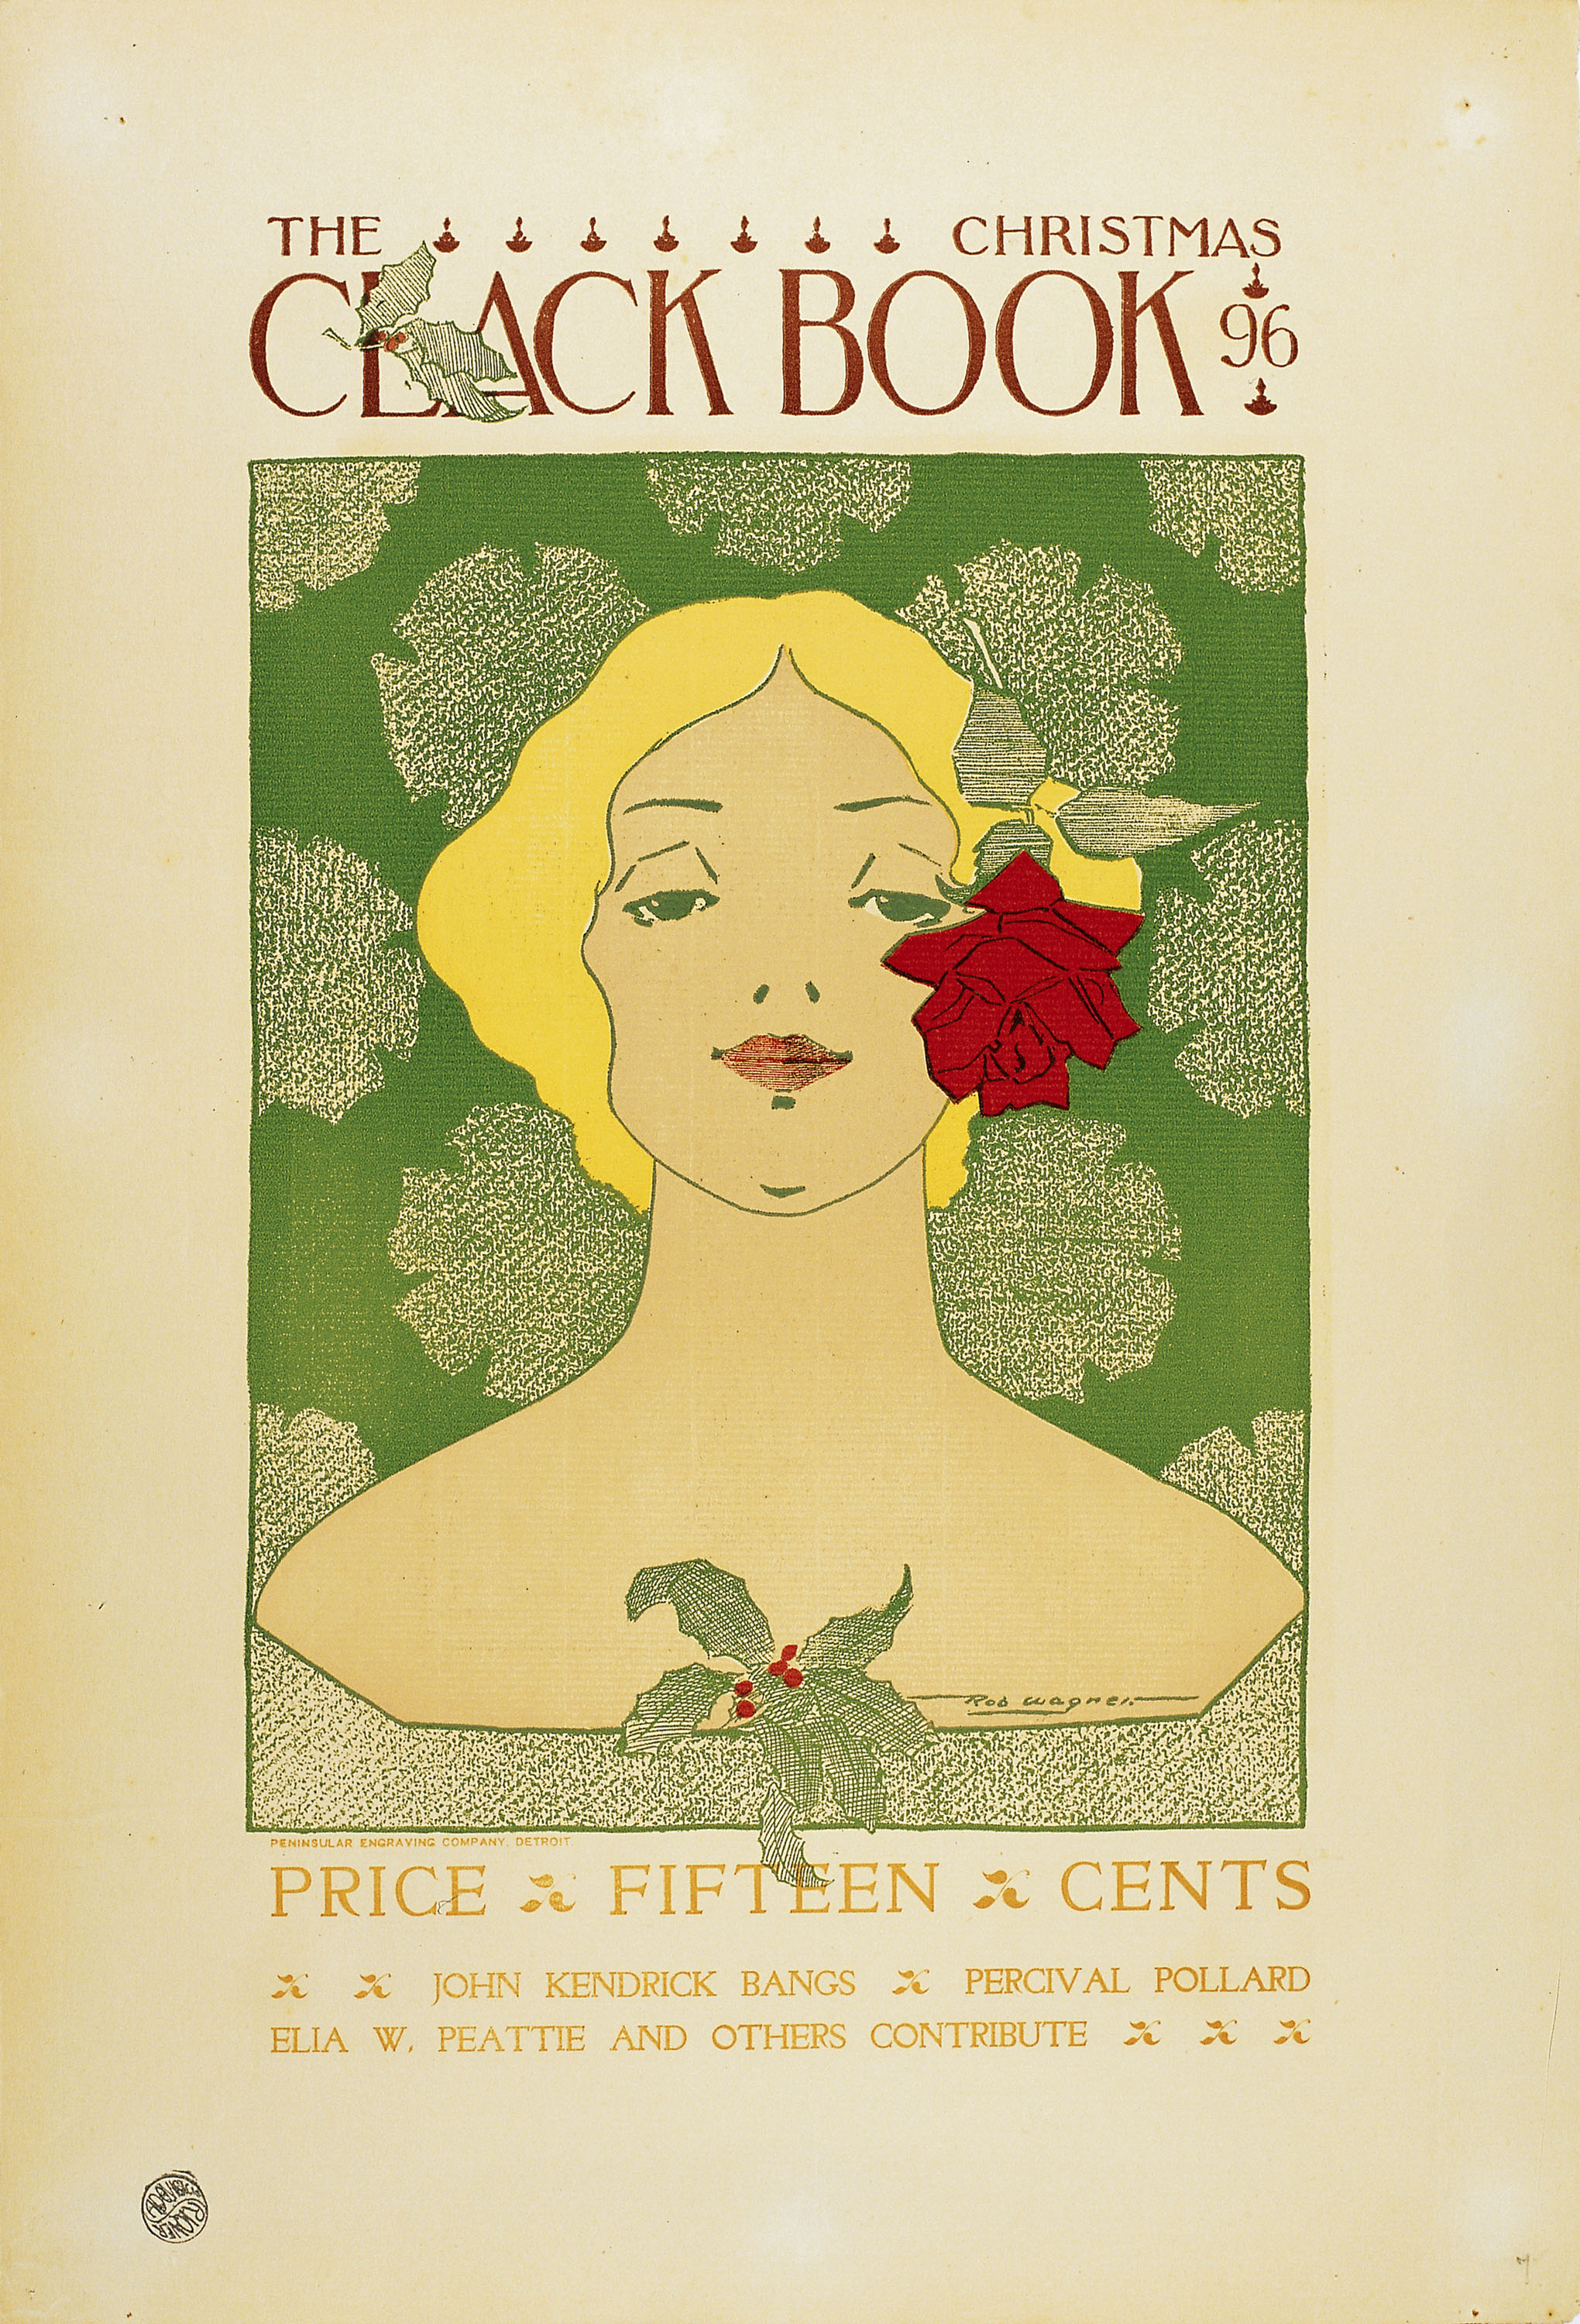 Robert Leicester Wagner - The Clack Book. Christmas 96 - 1896